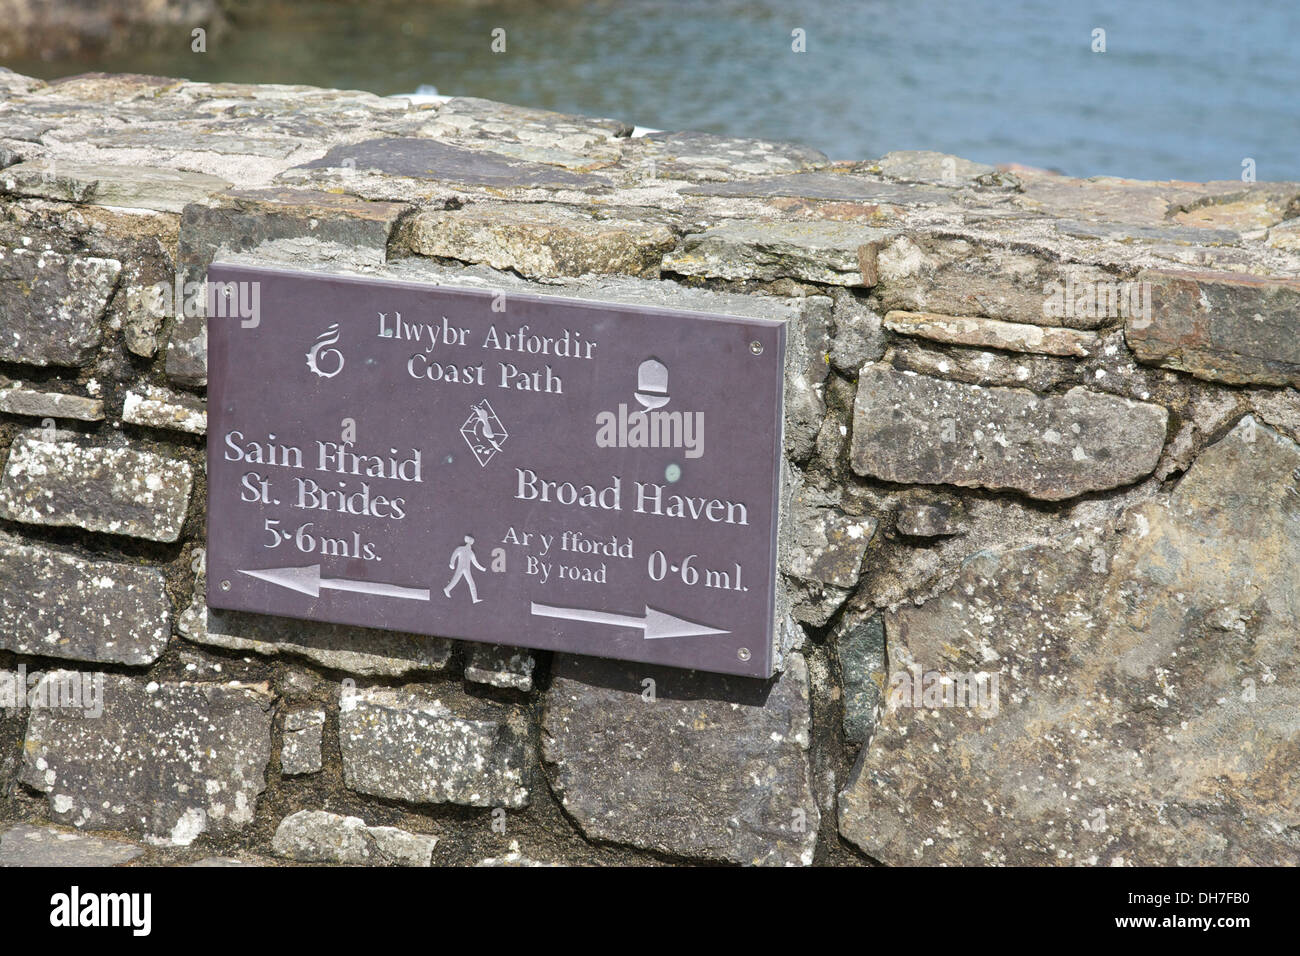 Coastal path sign mounted on a stone wall in Little Haven, Pembrokeshire, Wales, UK. - Stock Image